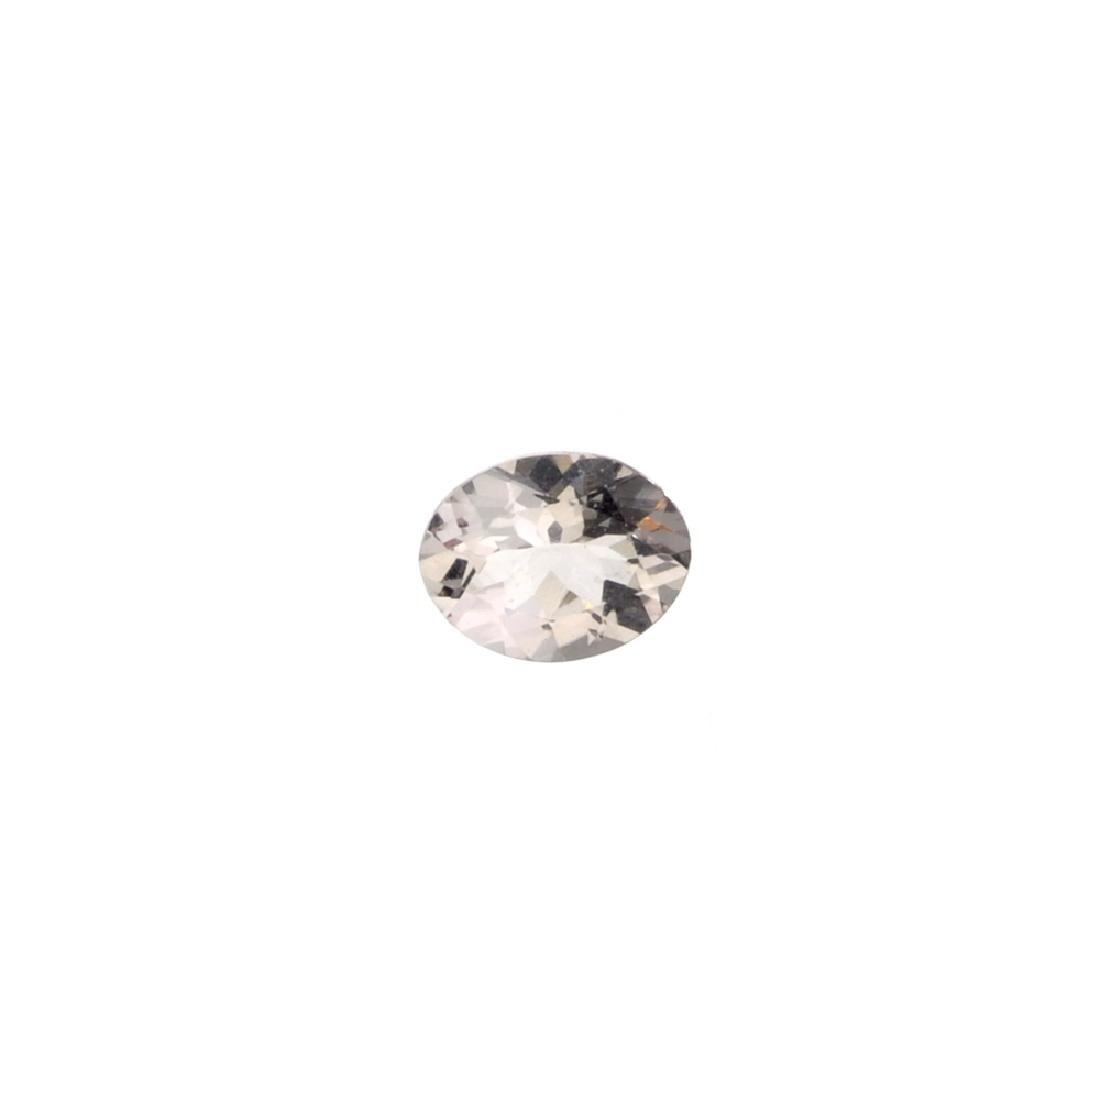 APP: 1k 1.44CT Oval Cut Morganite Gemstone